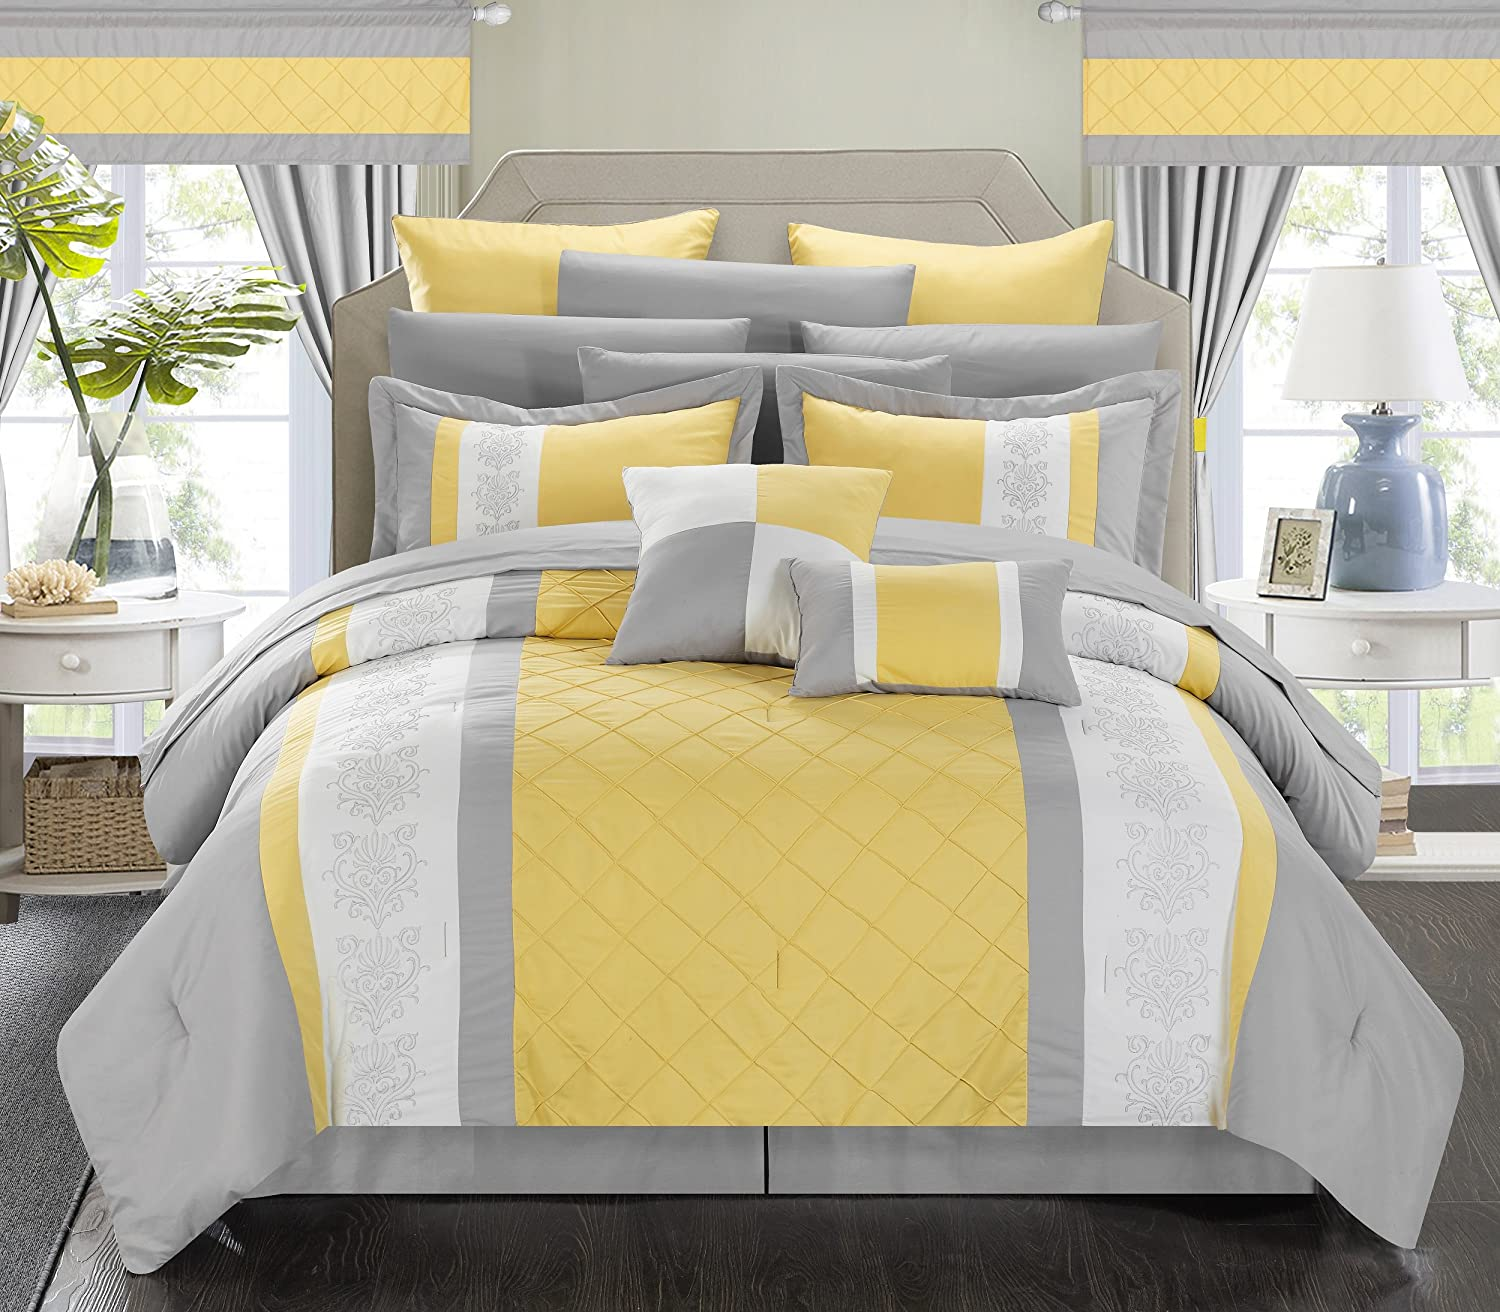 bedding pin comforters with duvet comforter ease and sale winter style yellow queen cover